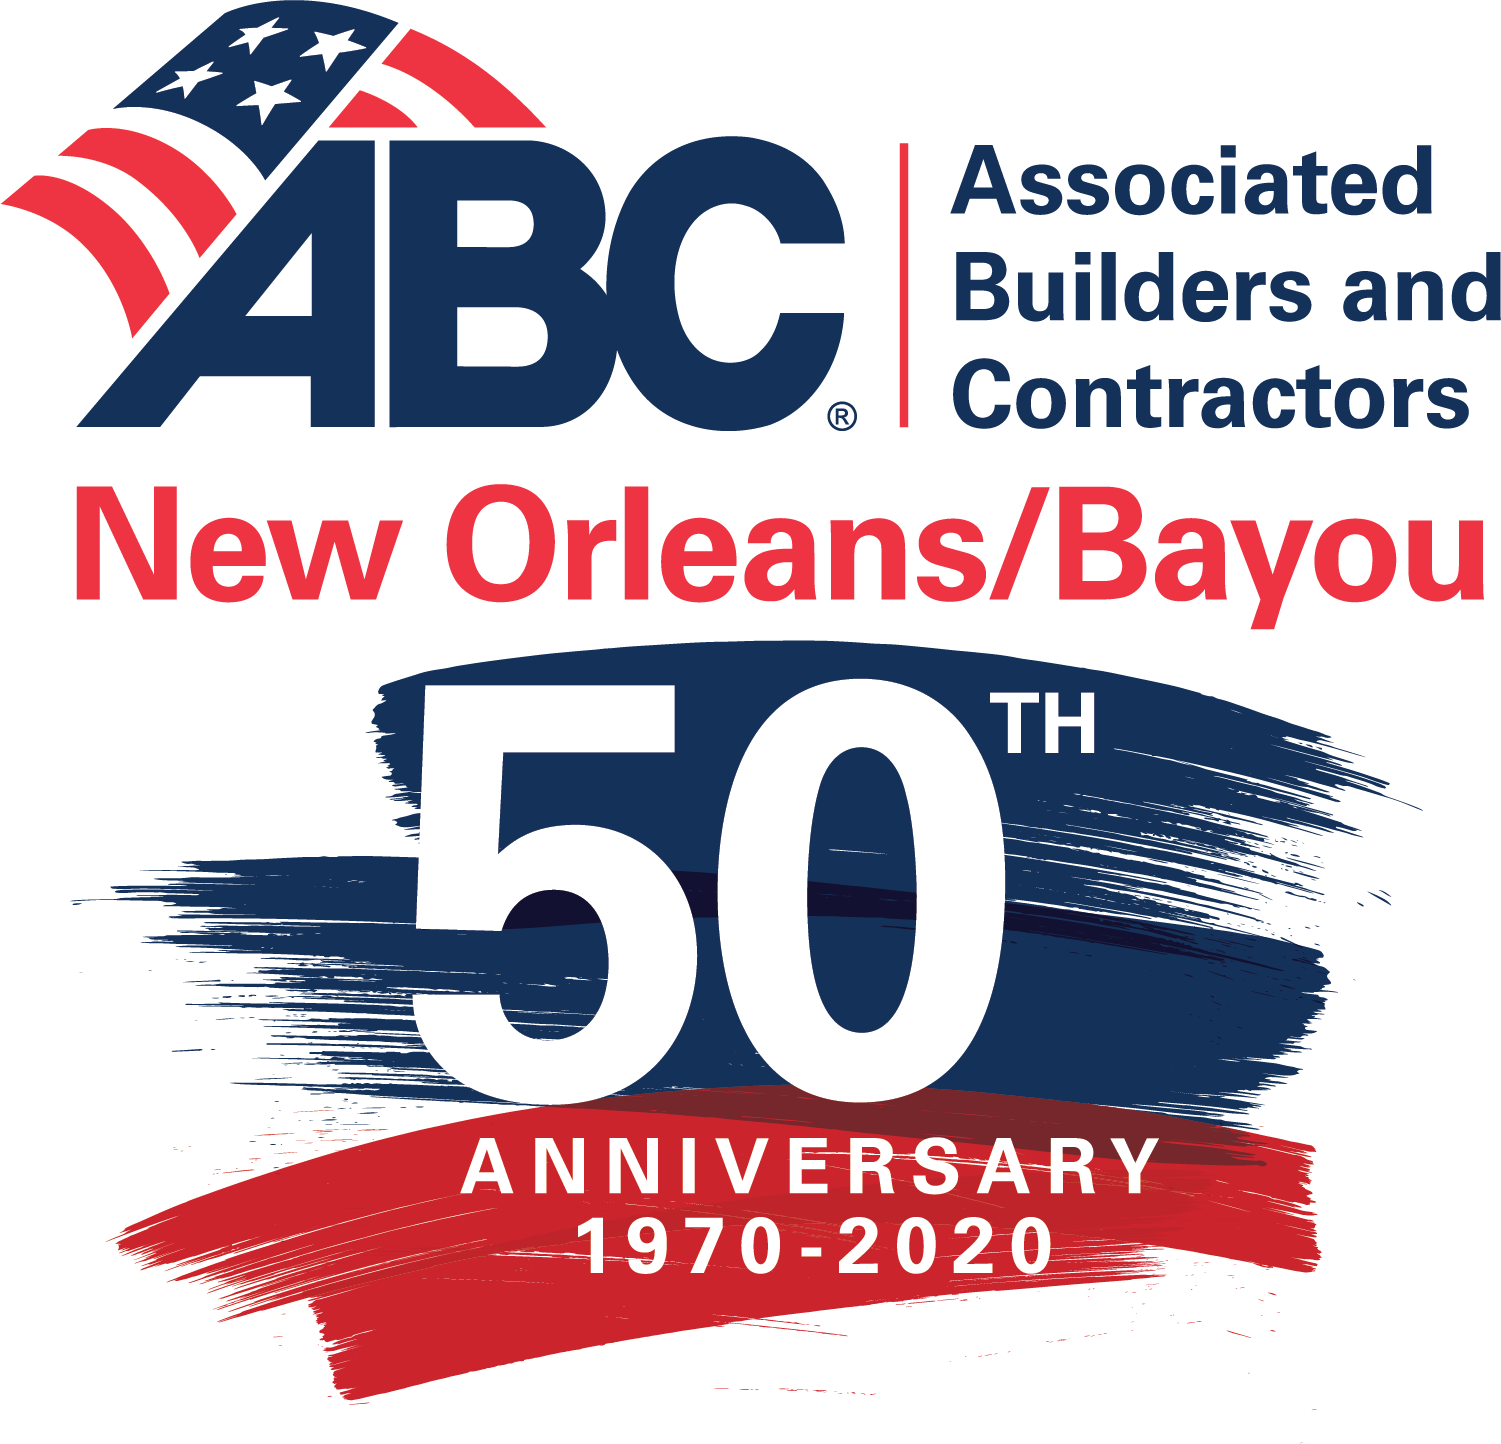 Associated Builders and Contractors - Bayou Chapter